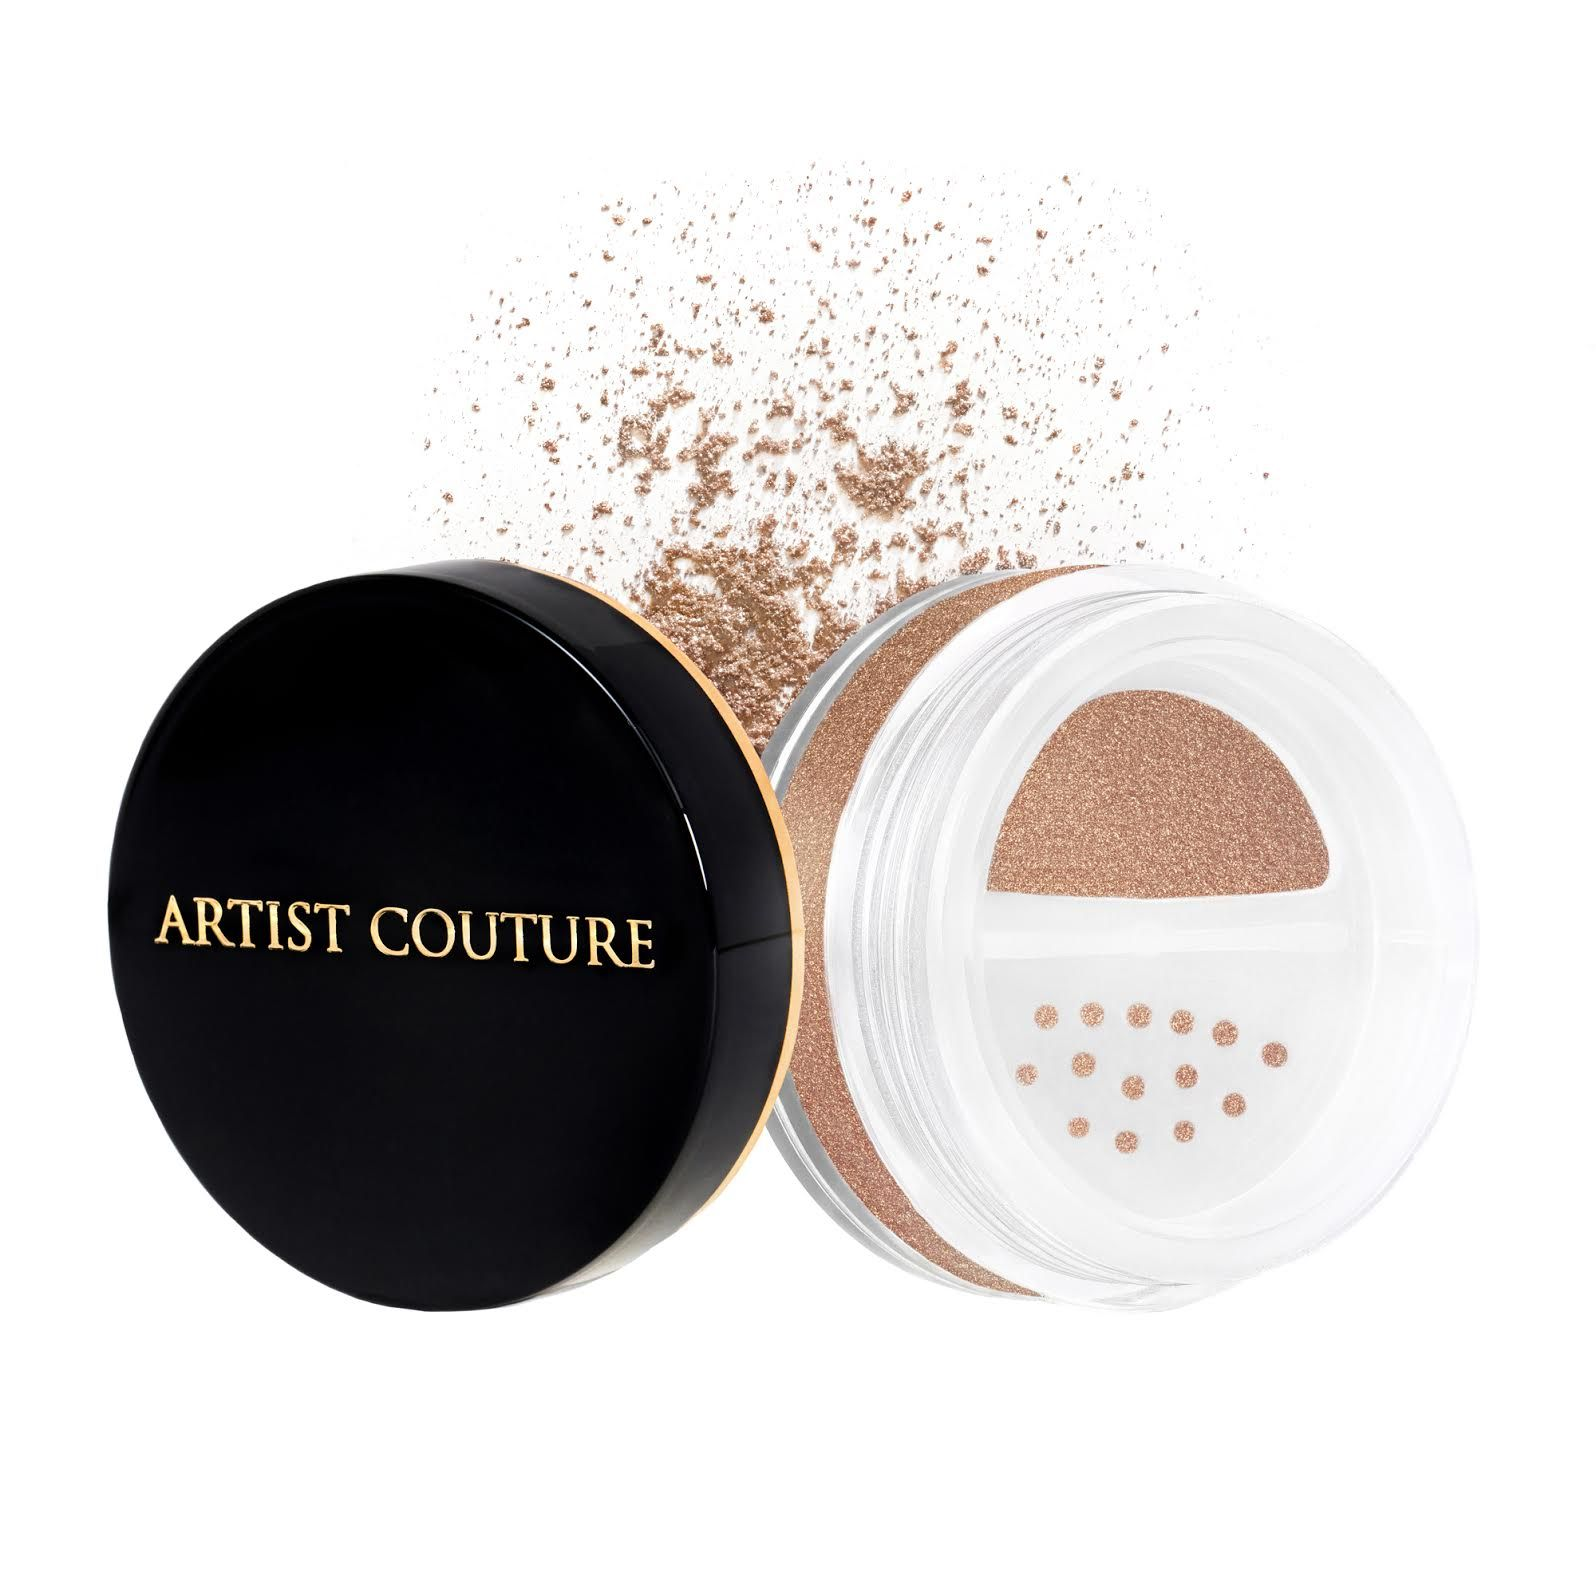 Diamond Glow Powder Lickable in 2020 Artist couture